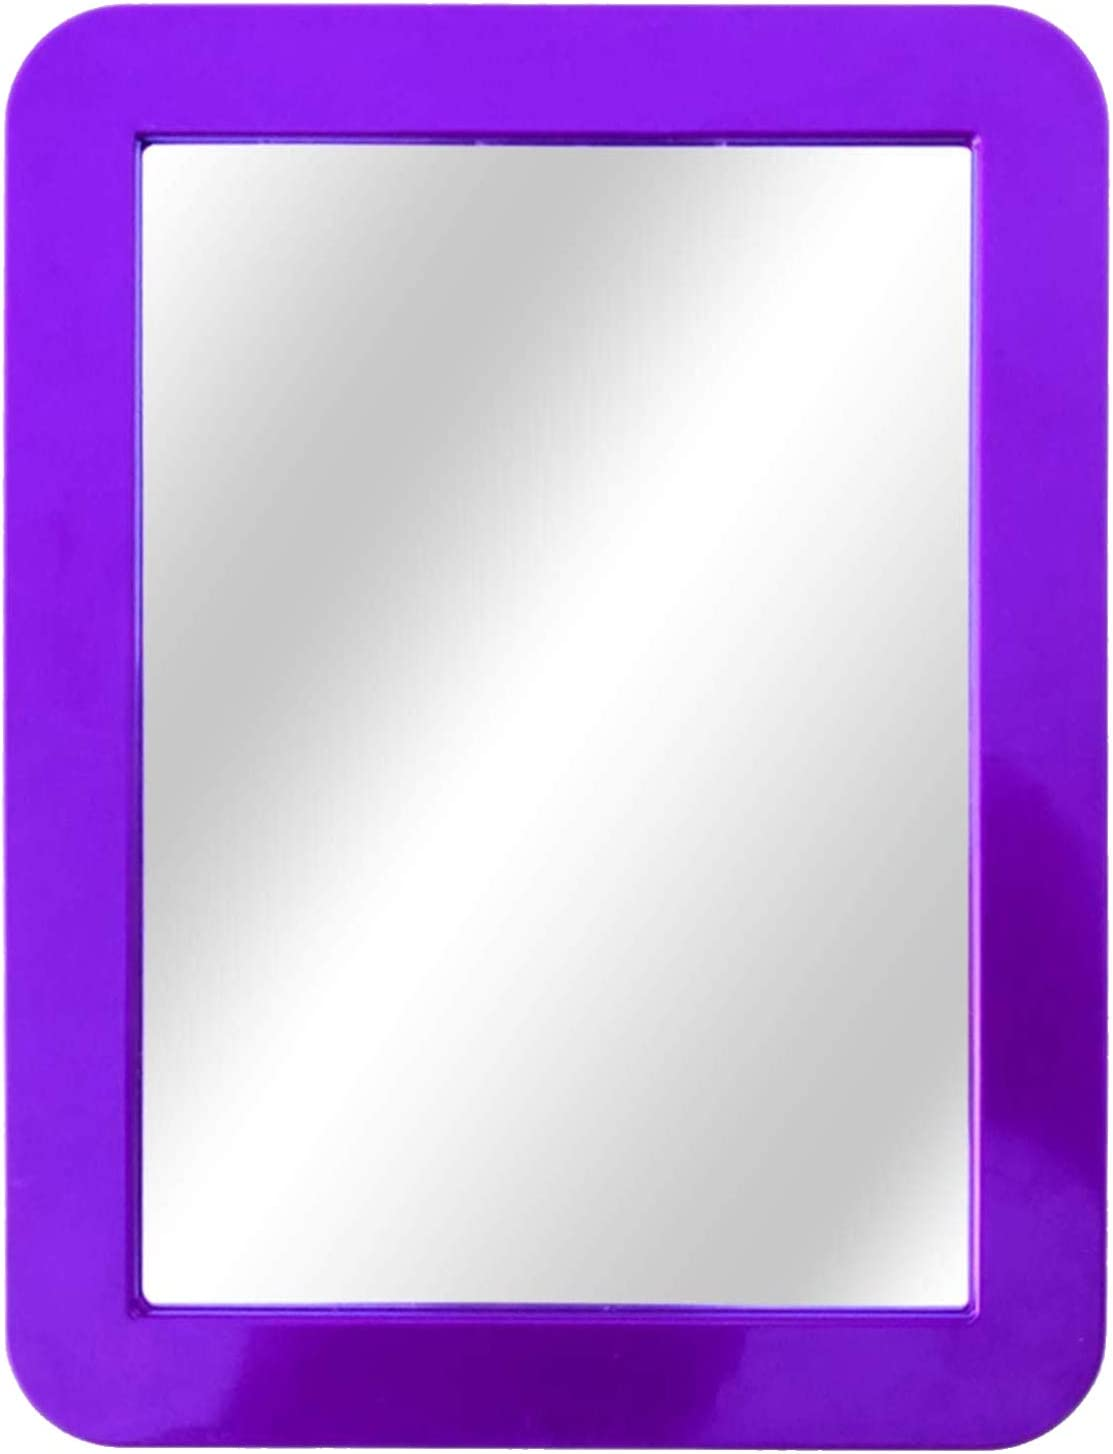 Kicko Purple Magnetic Mirror - 5x7 Inch - 1 Piece - for School Locker, Refrigerator, Home, Workshop or Office Cabinet